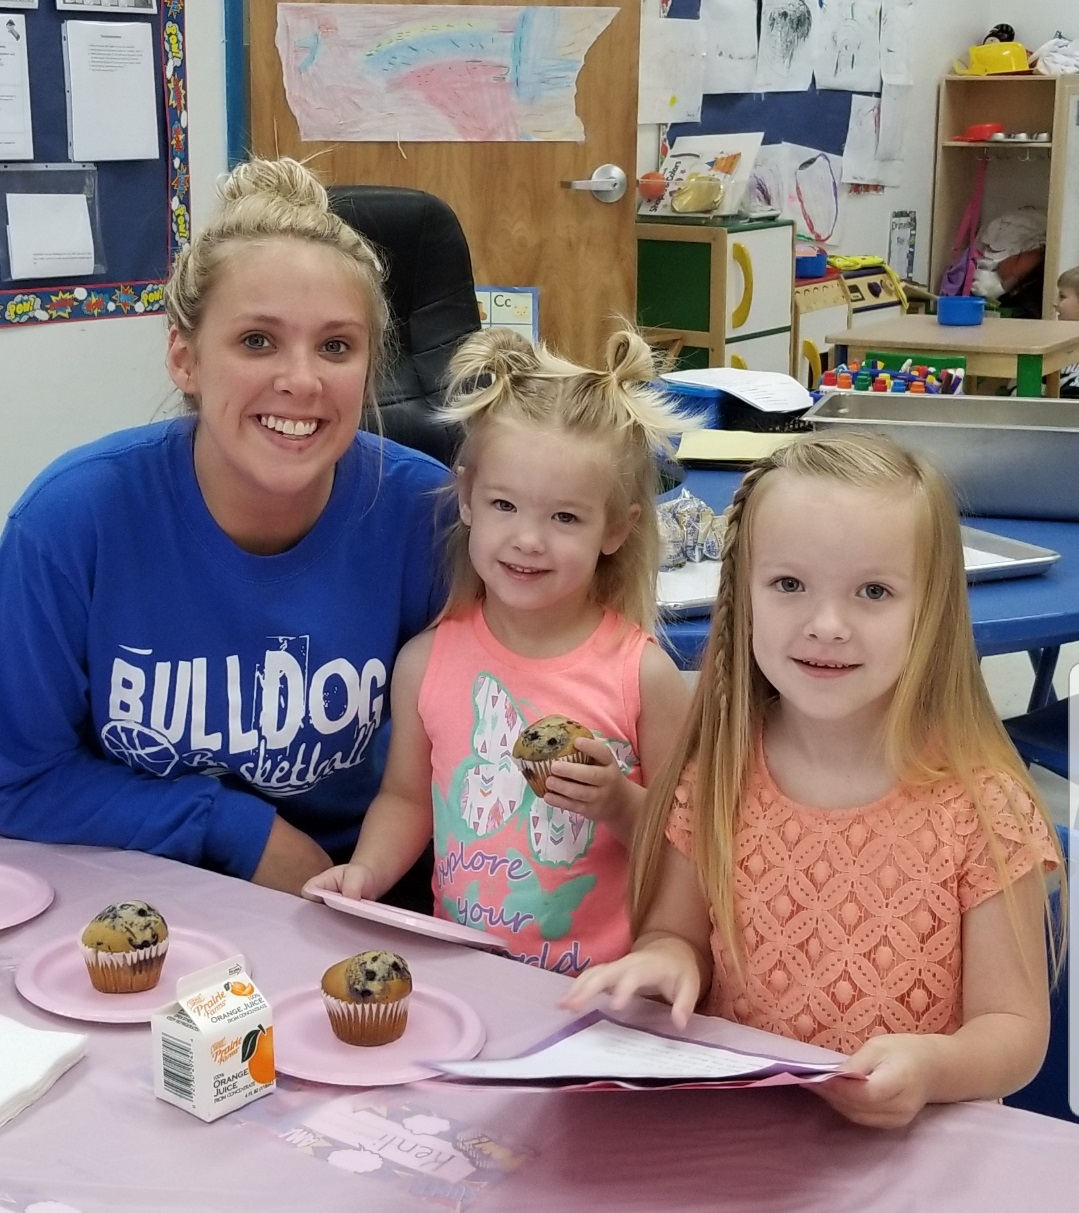 Mother's Day is coming up! The preschool students at ECC honored their mothers during the Muffins with Moms event on Tuesday, May 1st.